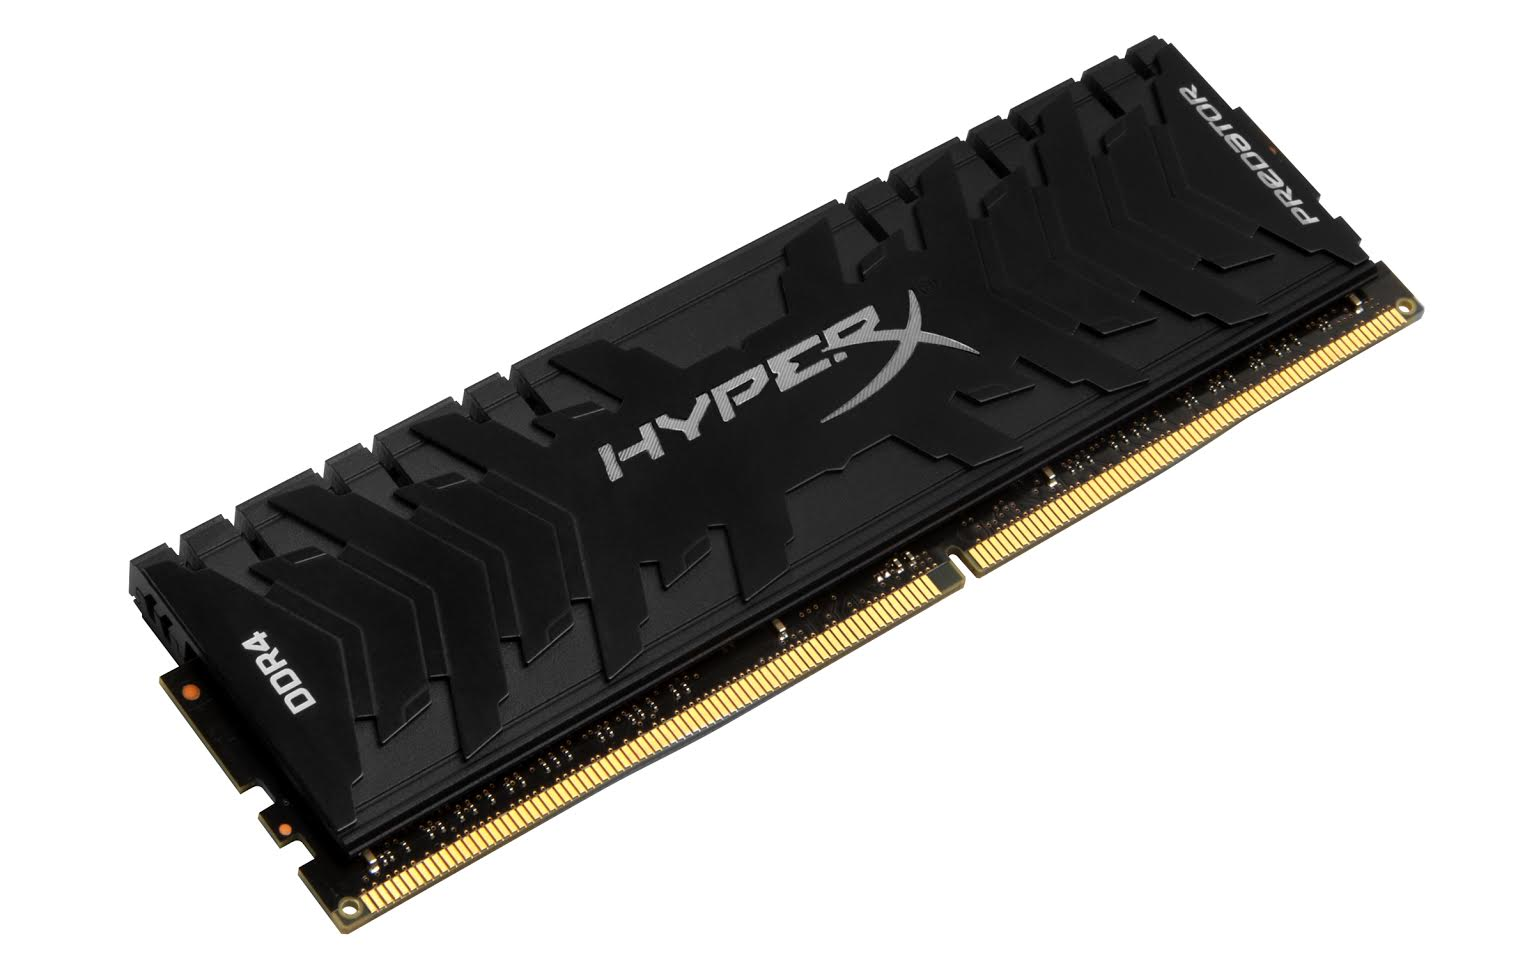 HyperX Sets DDR4 Overclocking World Record at 5902MHz 1